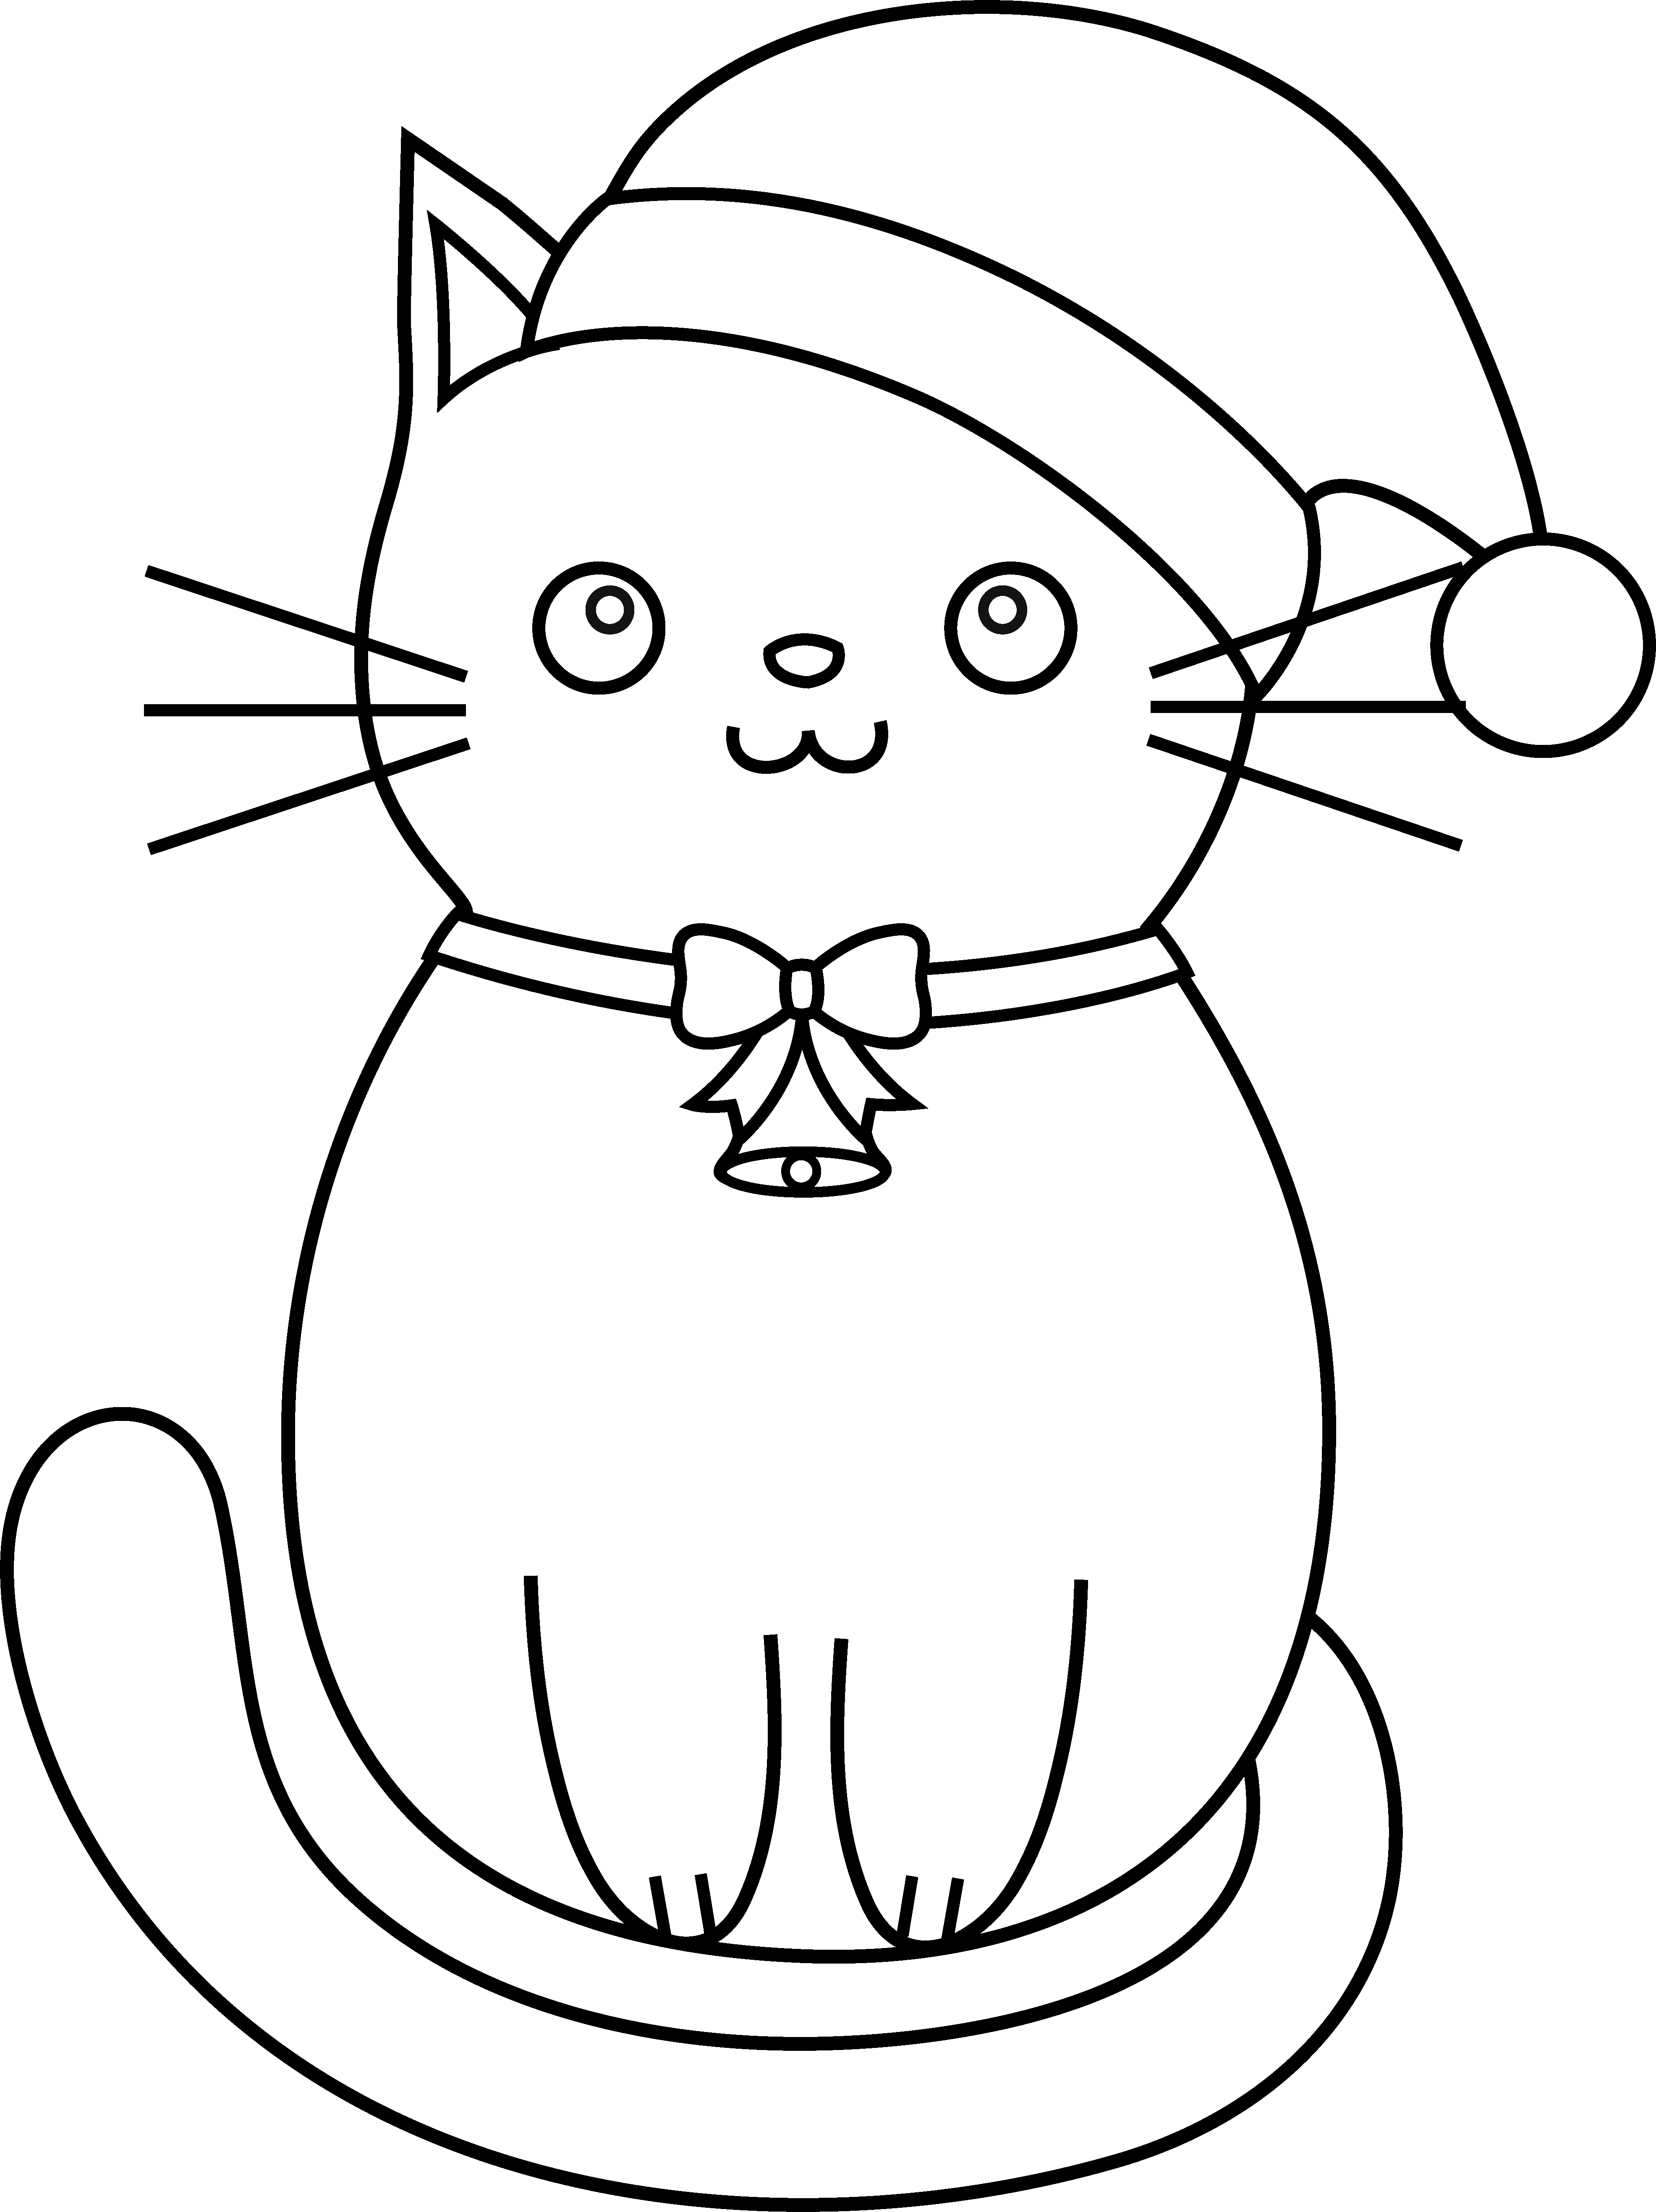 Christmas Kitten Coloring Pages With Kitty Line Art Animals Cats Pinterest